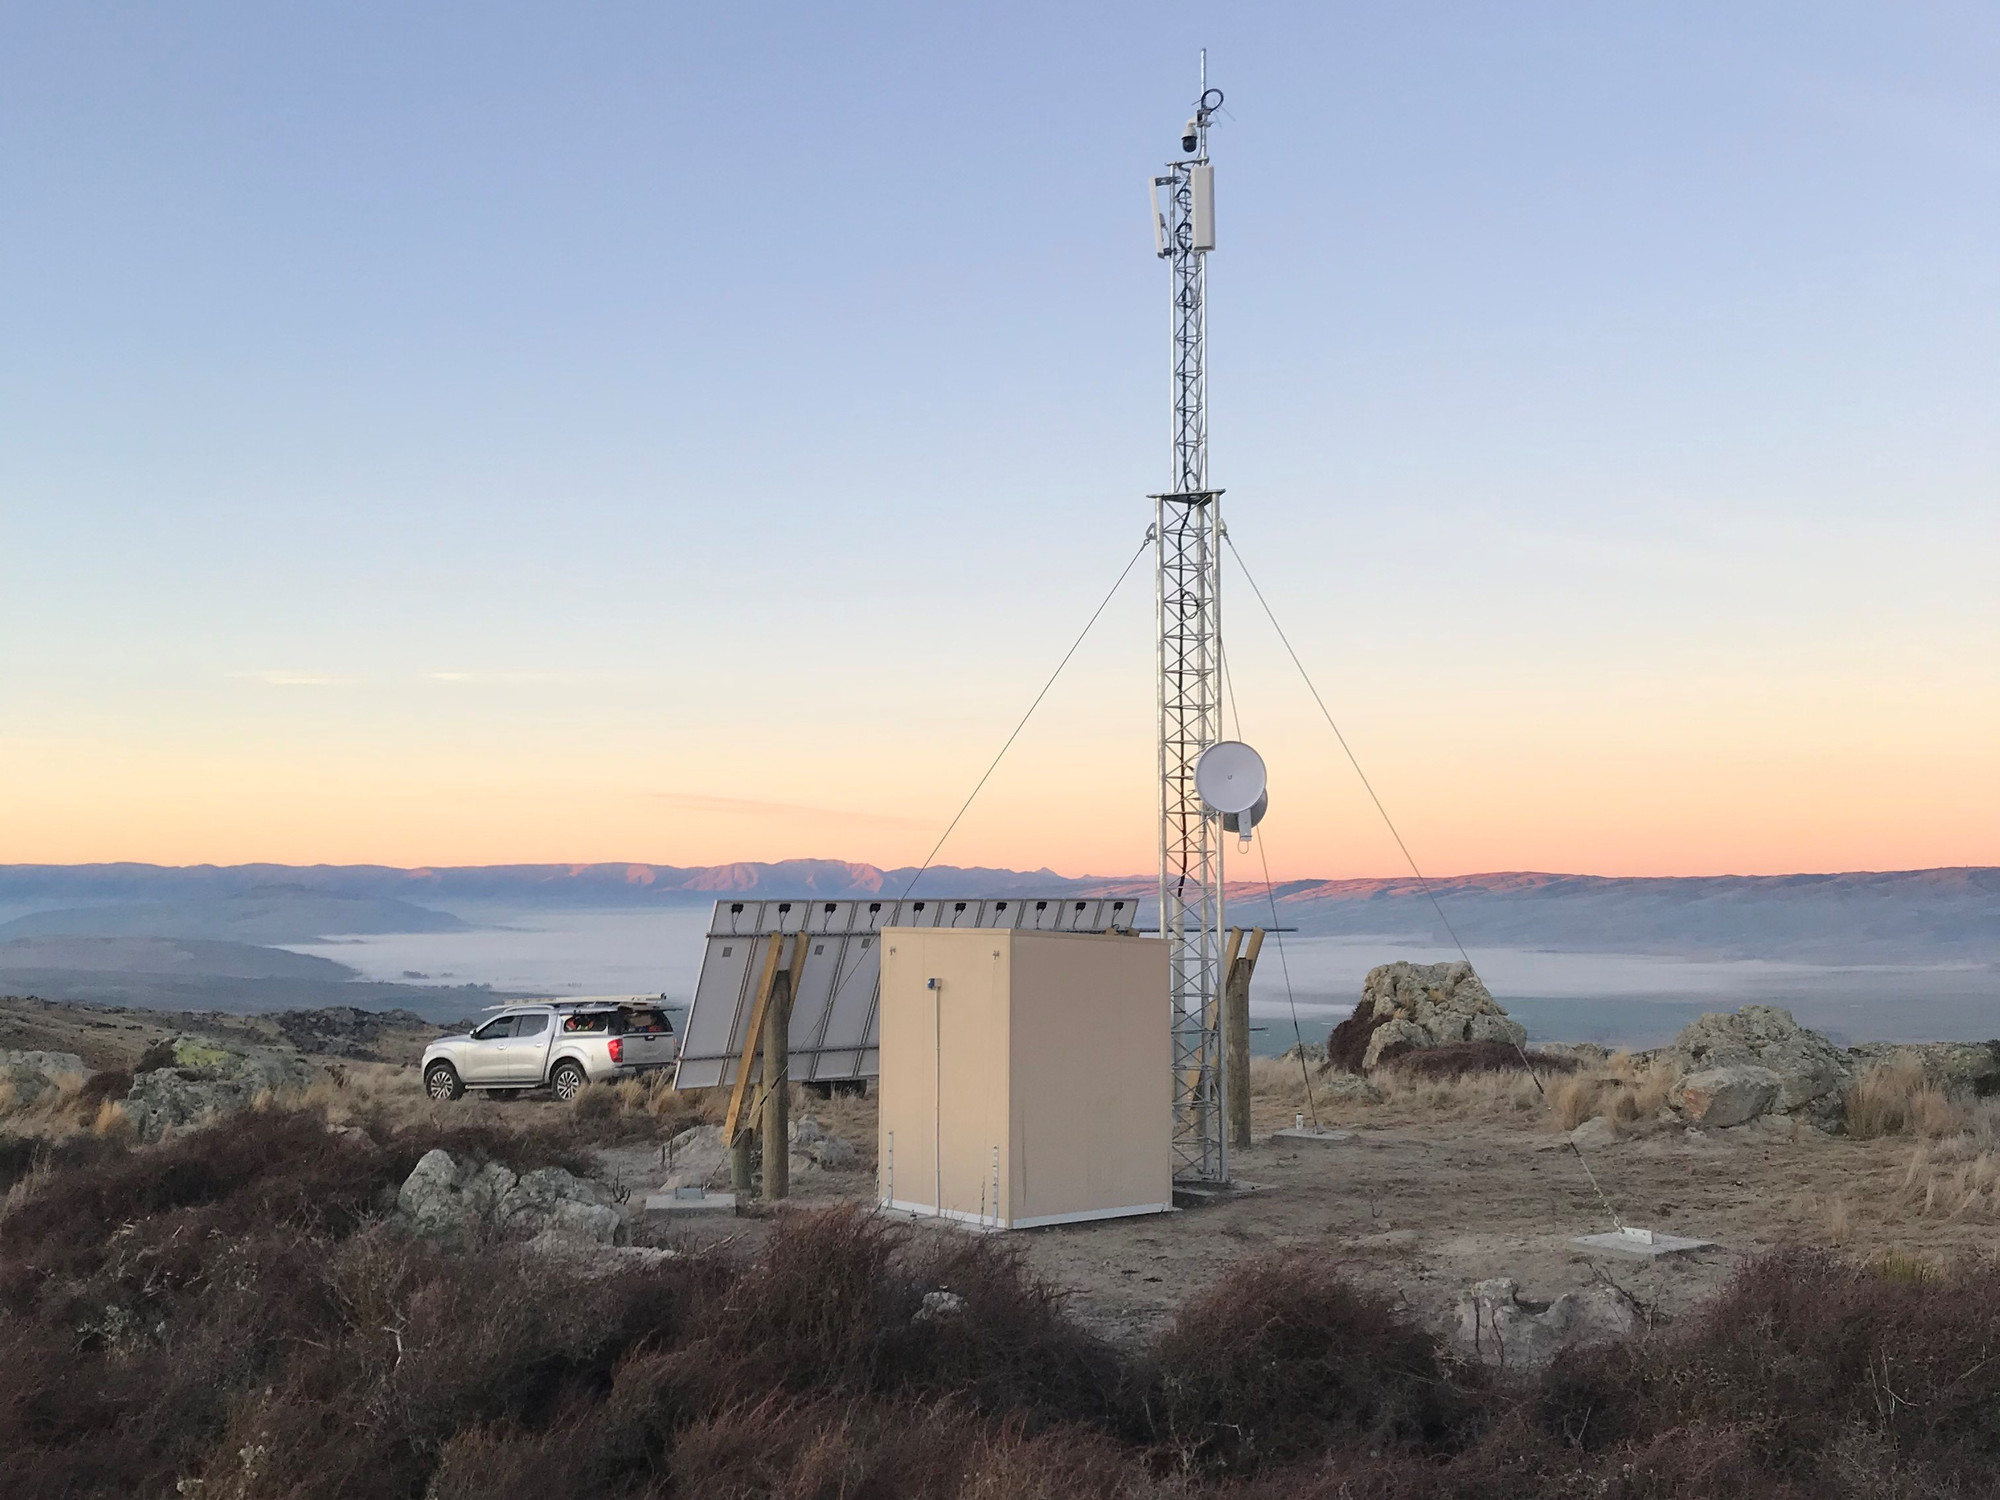 The Moa Creek repeater installed by Unifone near Omakau to increase internet coverage in the region